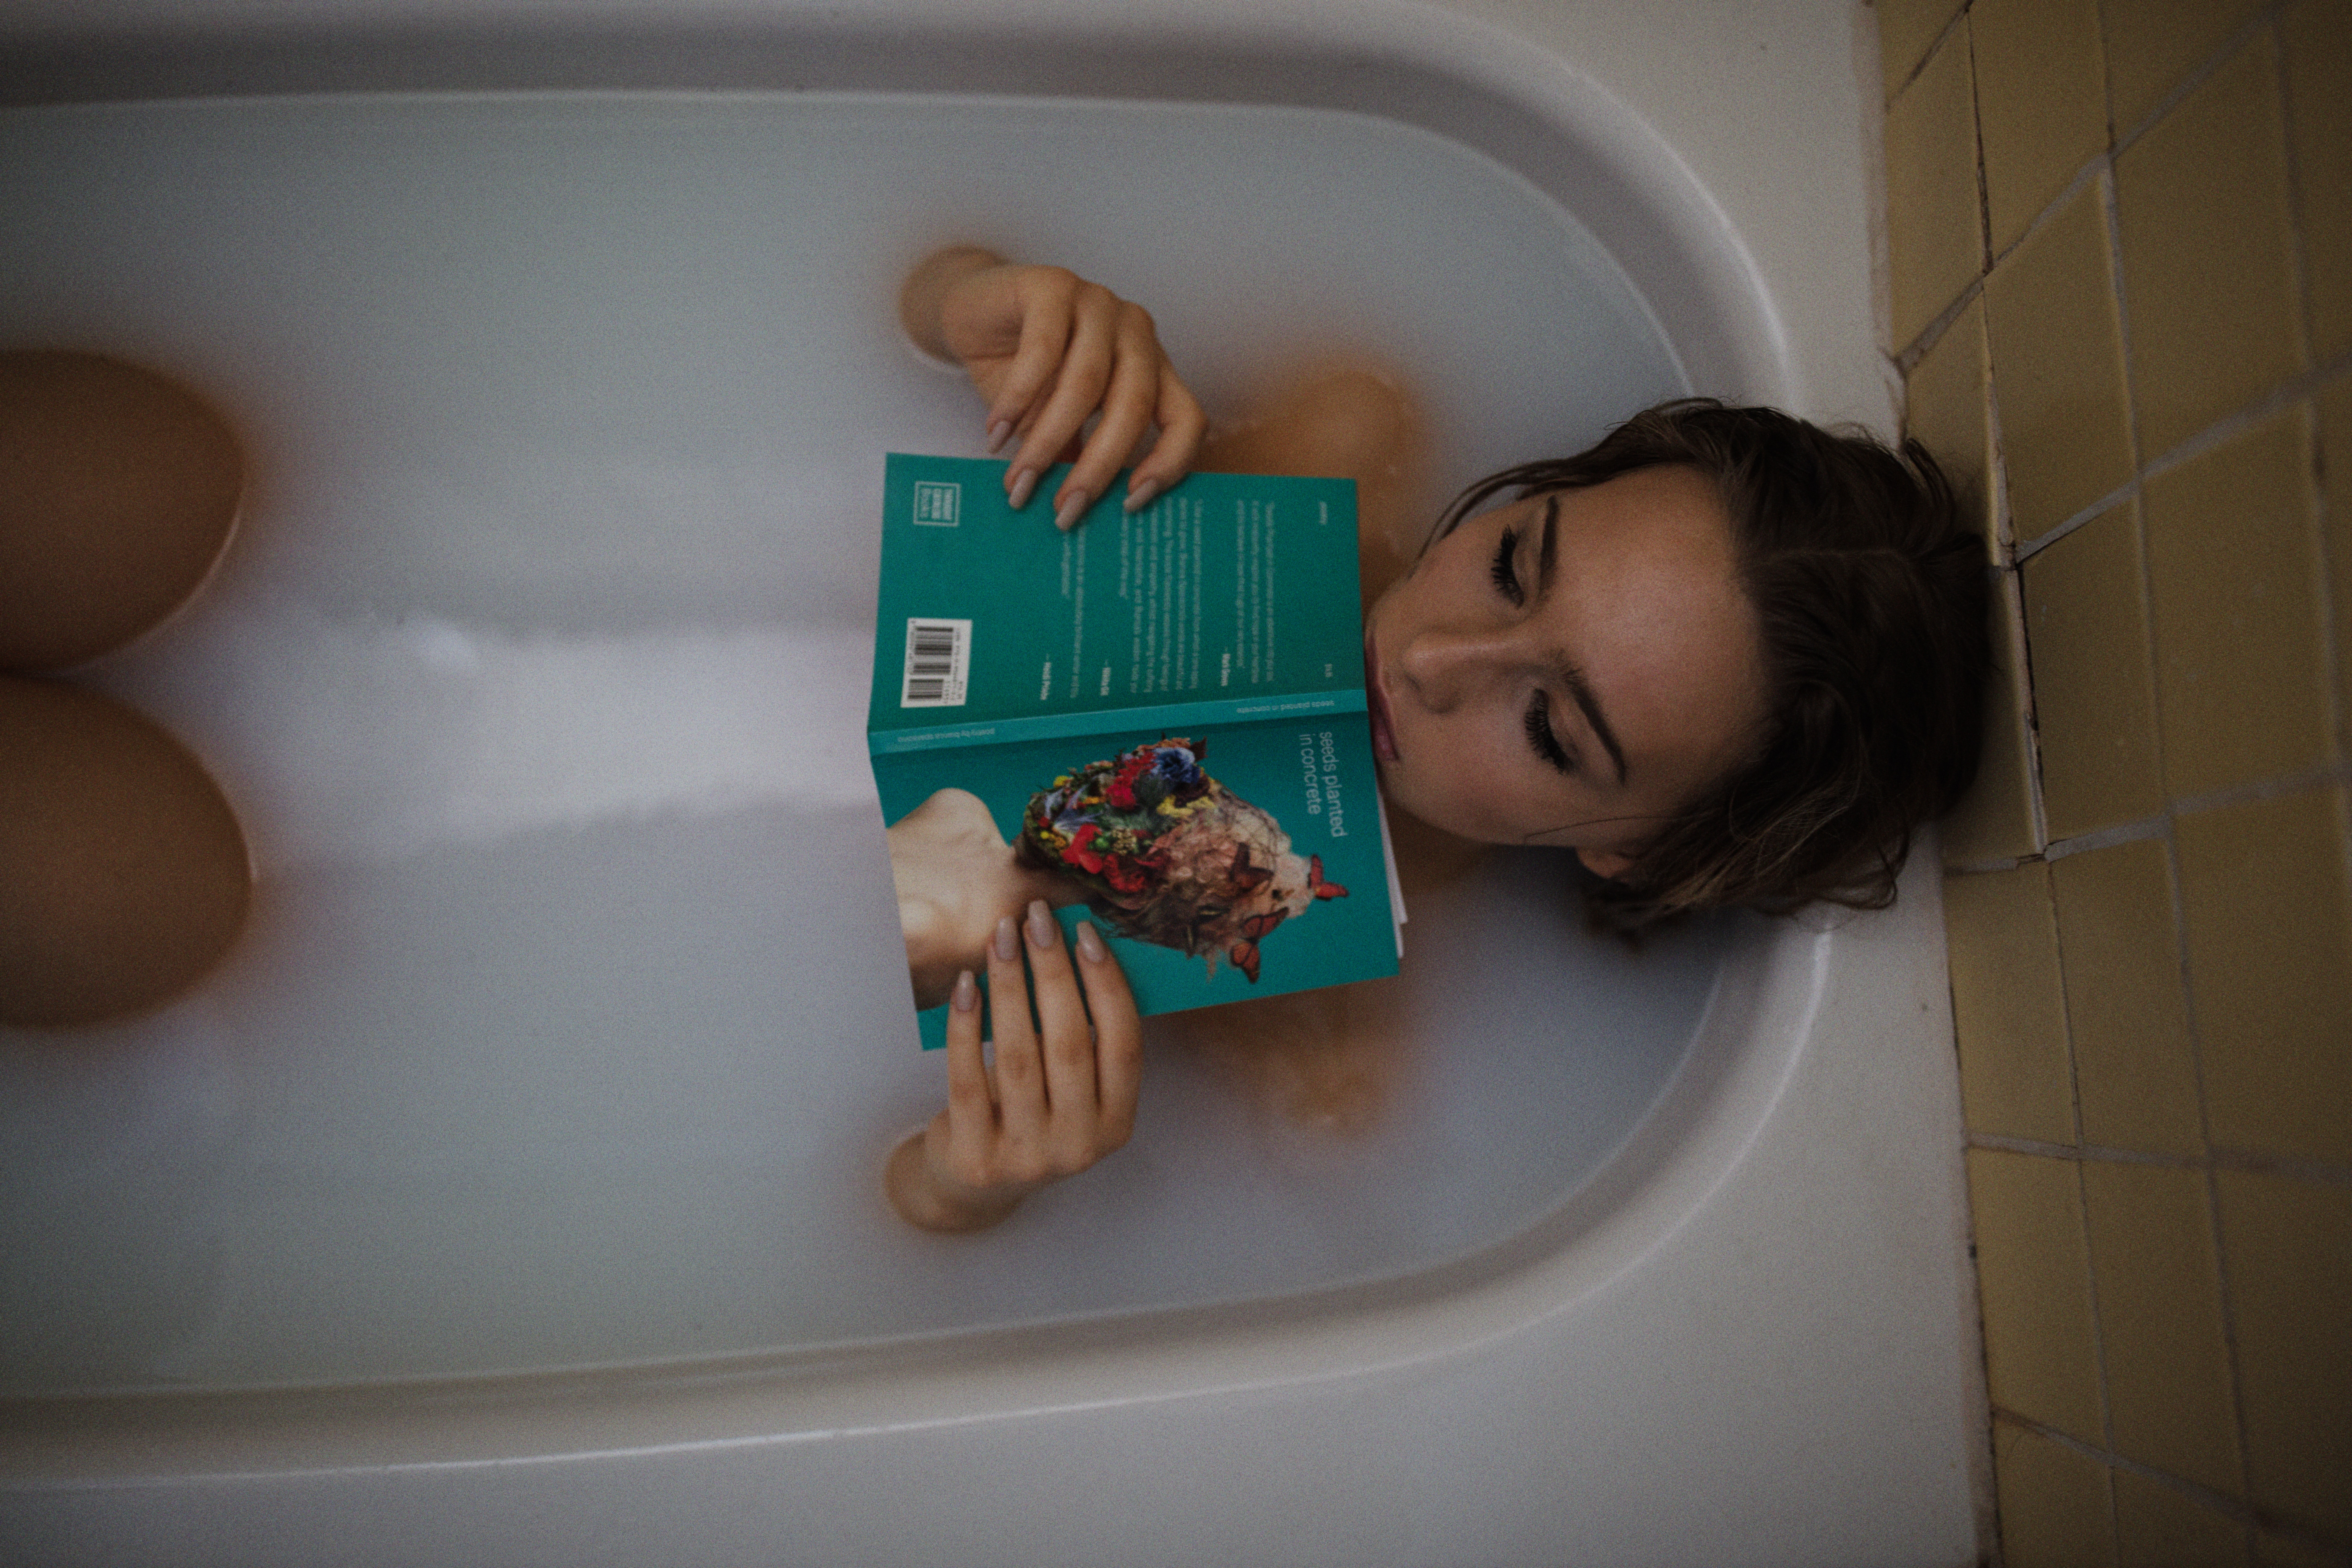 Bathtub Confessional :: Forgiveness for Mothers